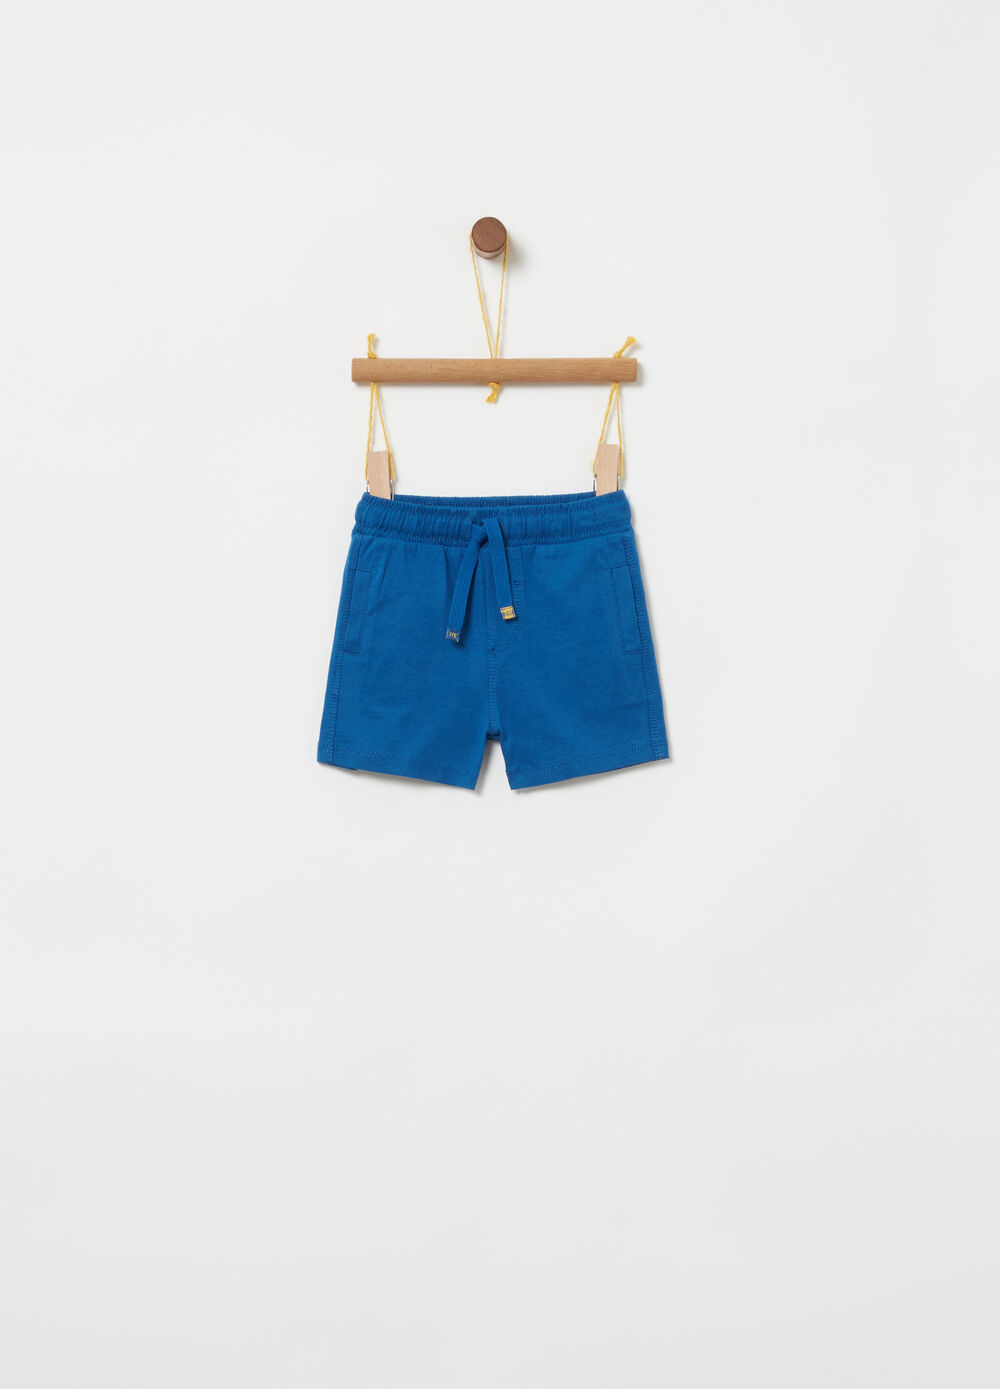 Shorts in jersey puro cotone con coulisse